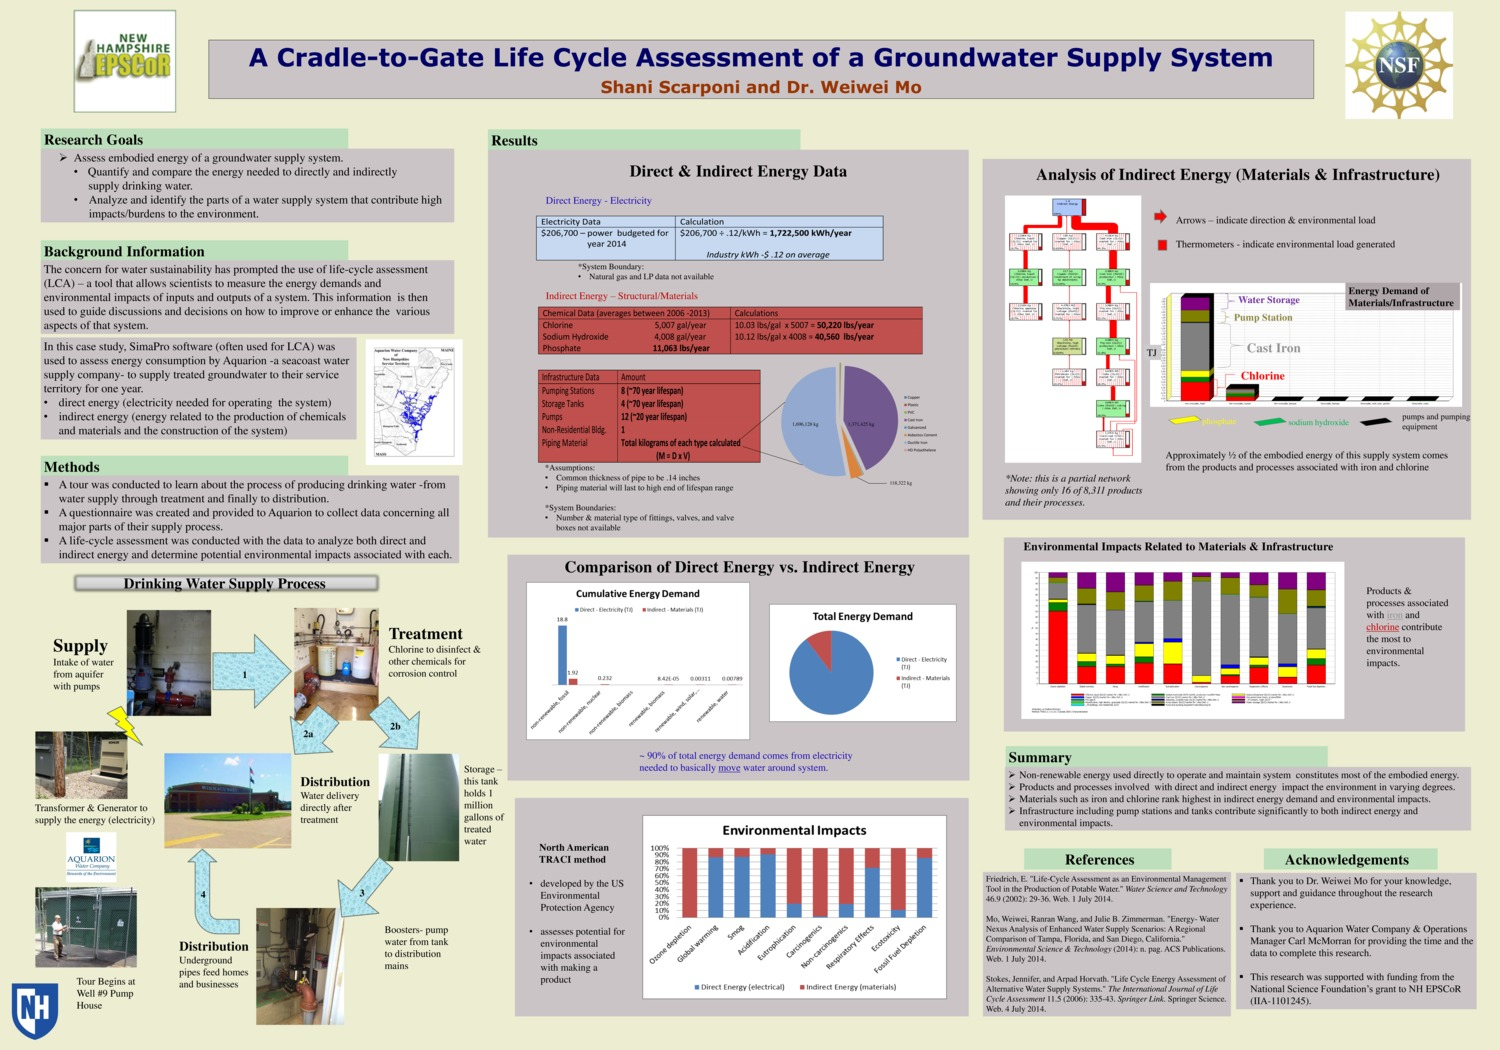 Life Cycle Assessment Groundwater by srhale